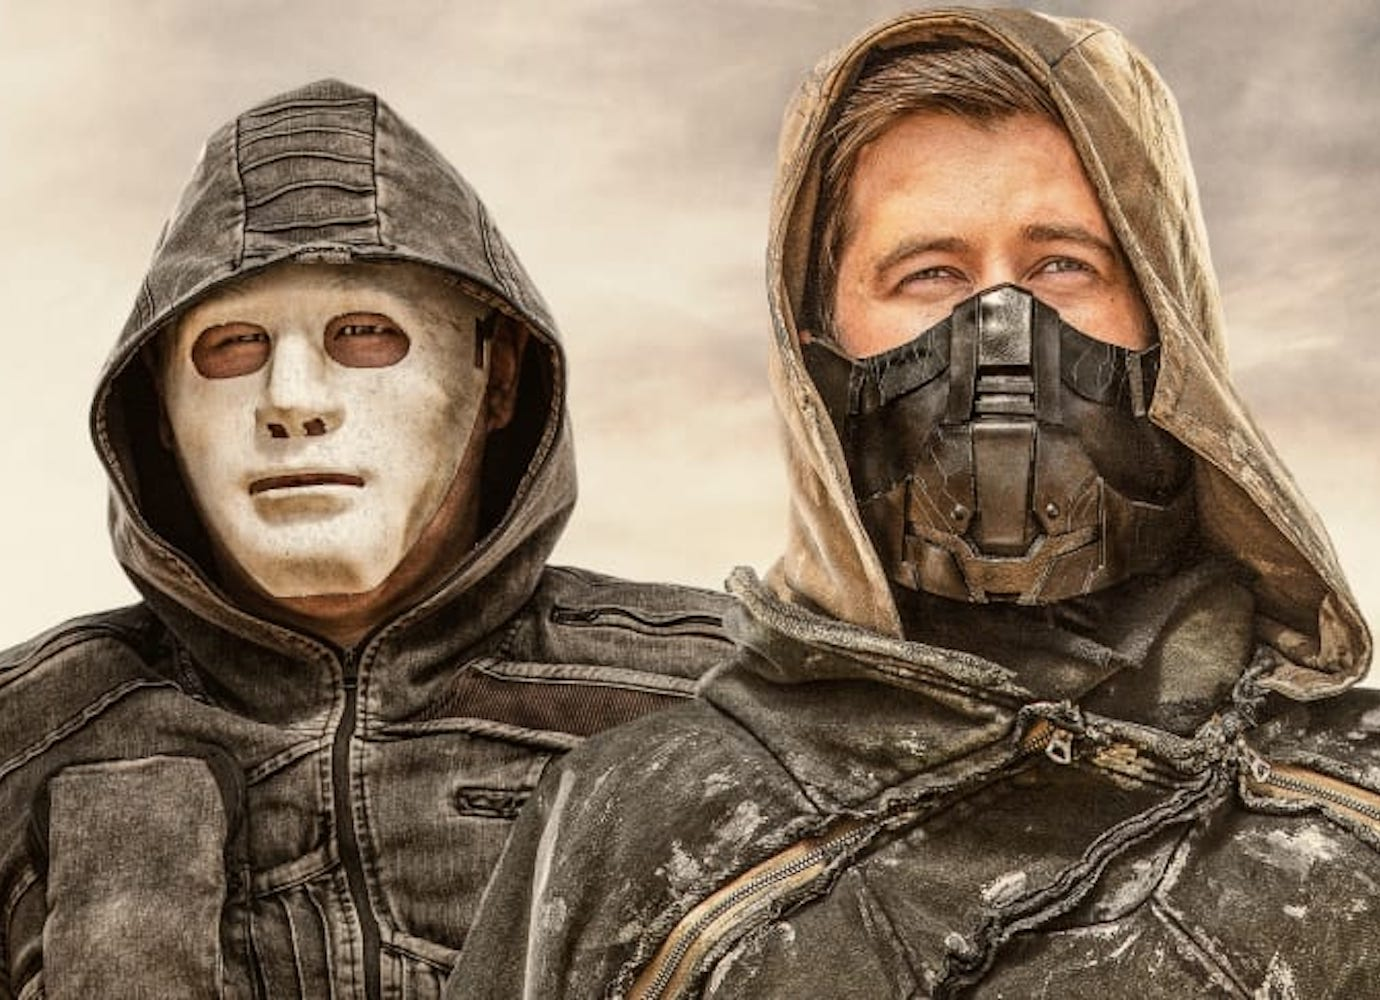 Get ready for the collab track from award-winning DJs Imanbek and Alan Walker